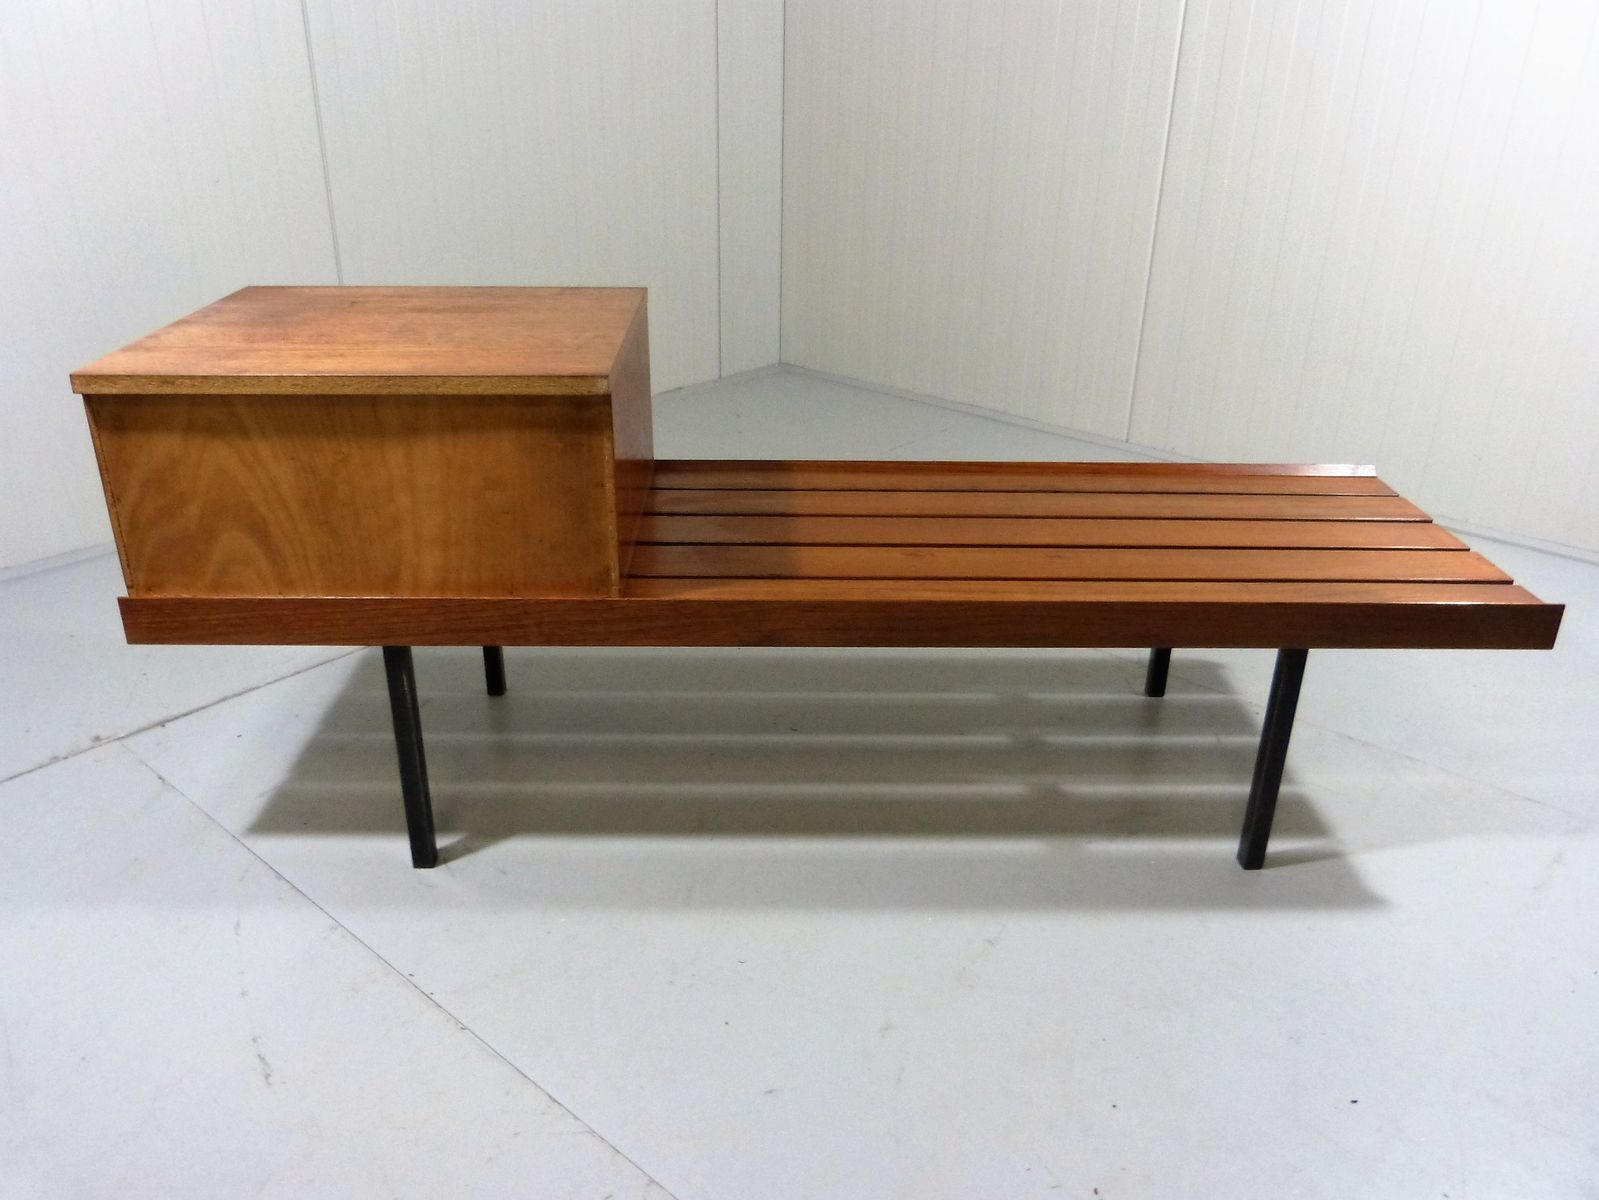 Vintage Teak Bench With Drawers For Sale At Pamono